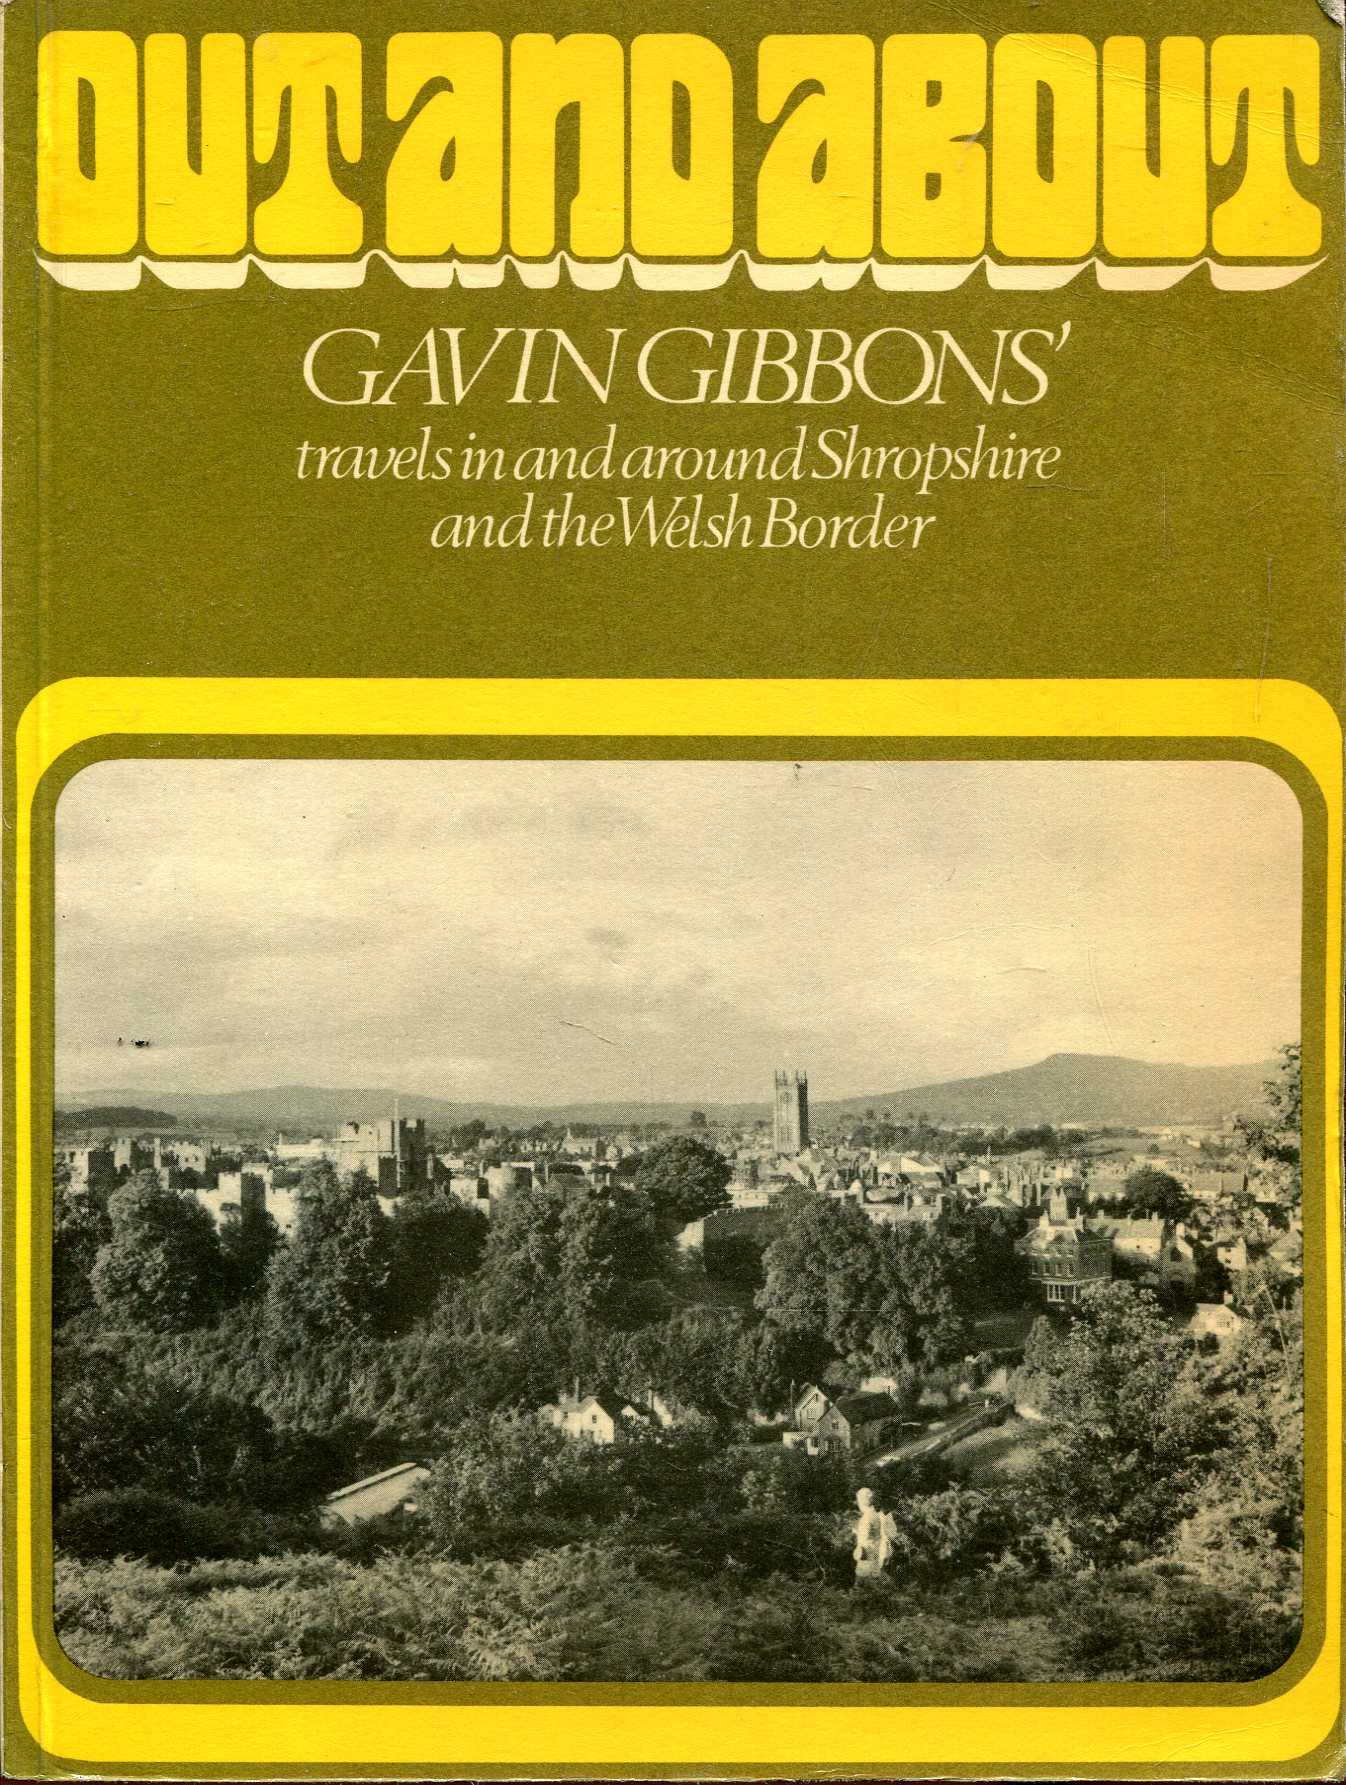 Image for Out and About, Gavin Gibbons' travels in and around Shropshire and the Welsh Border